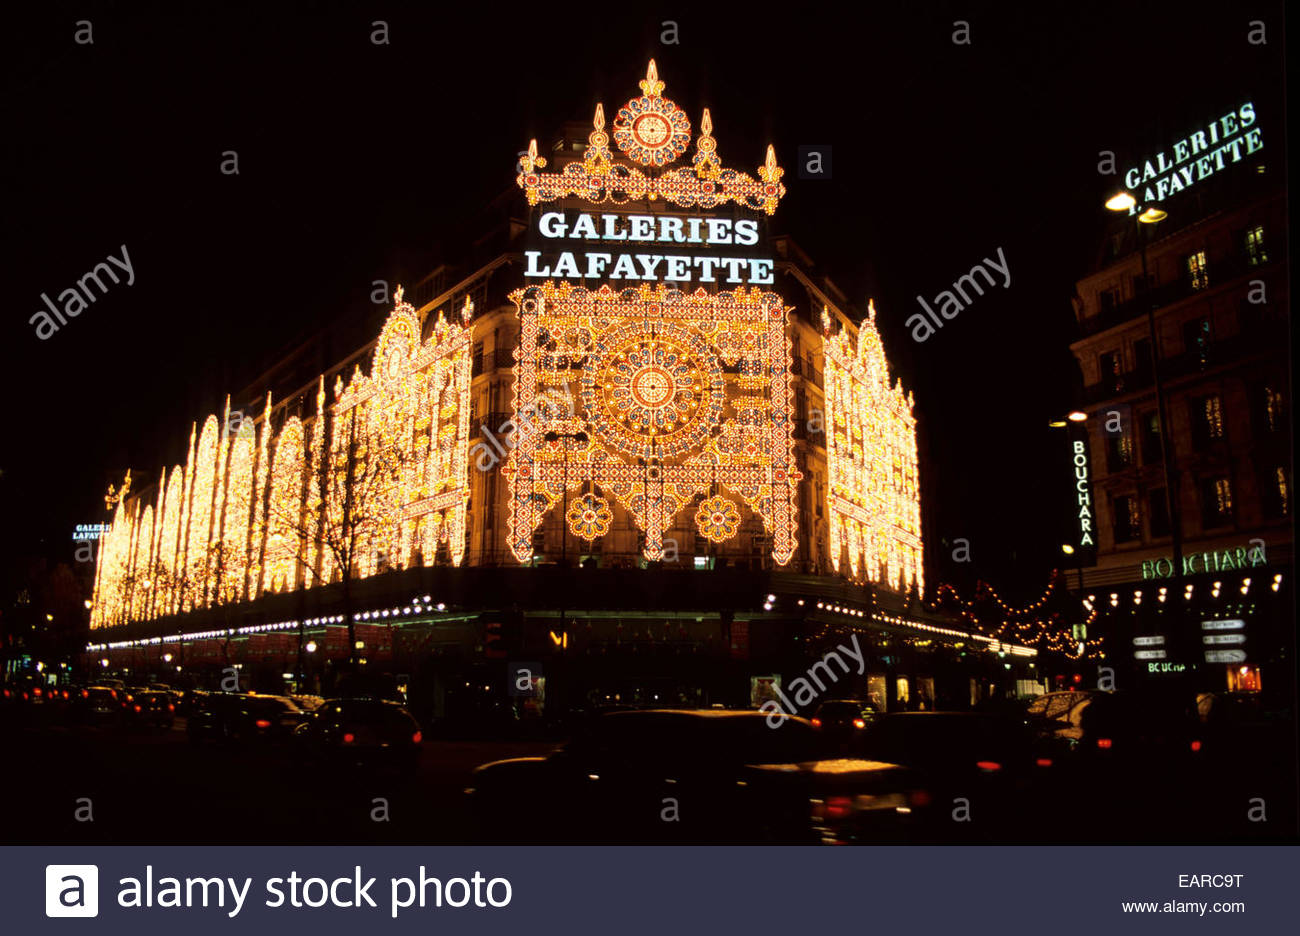 The Galeries Lafayette decorations during Christmas time, Paris, France. - Stock Image